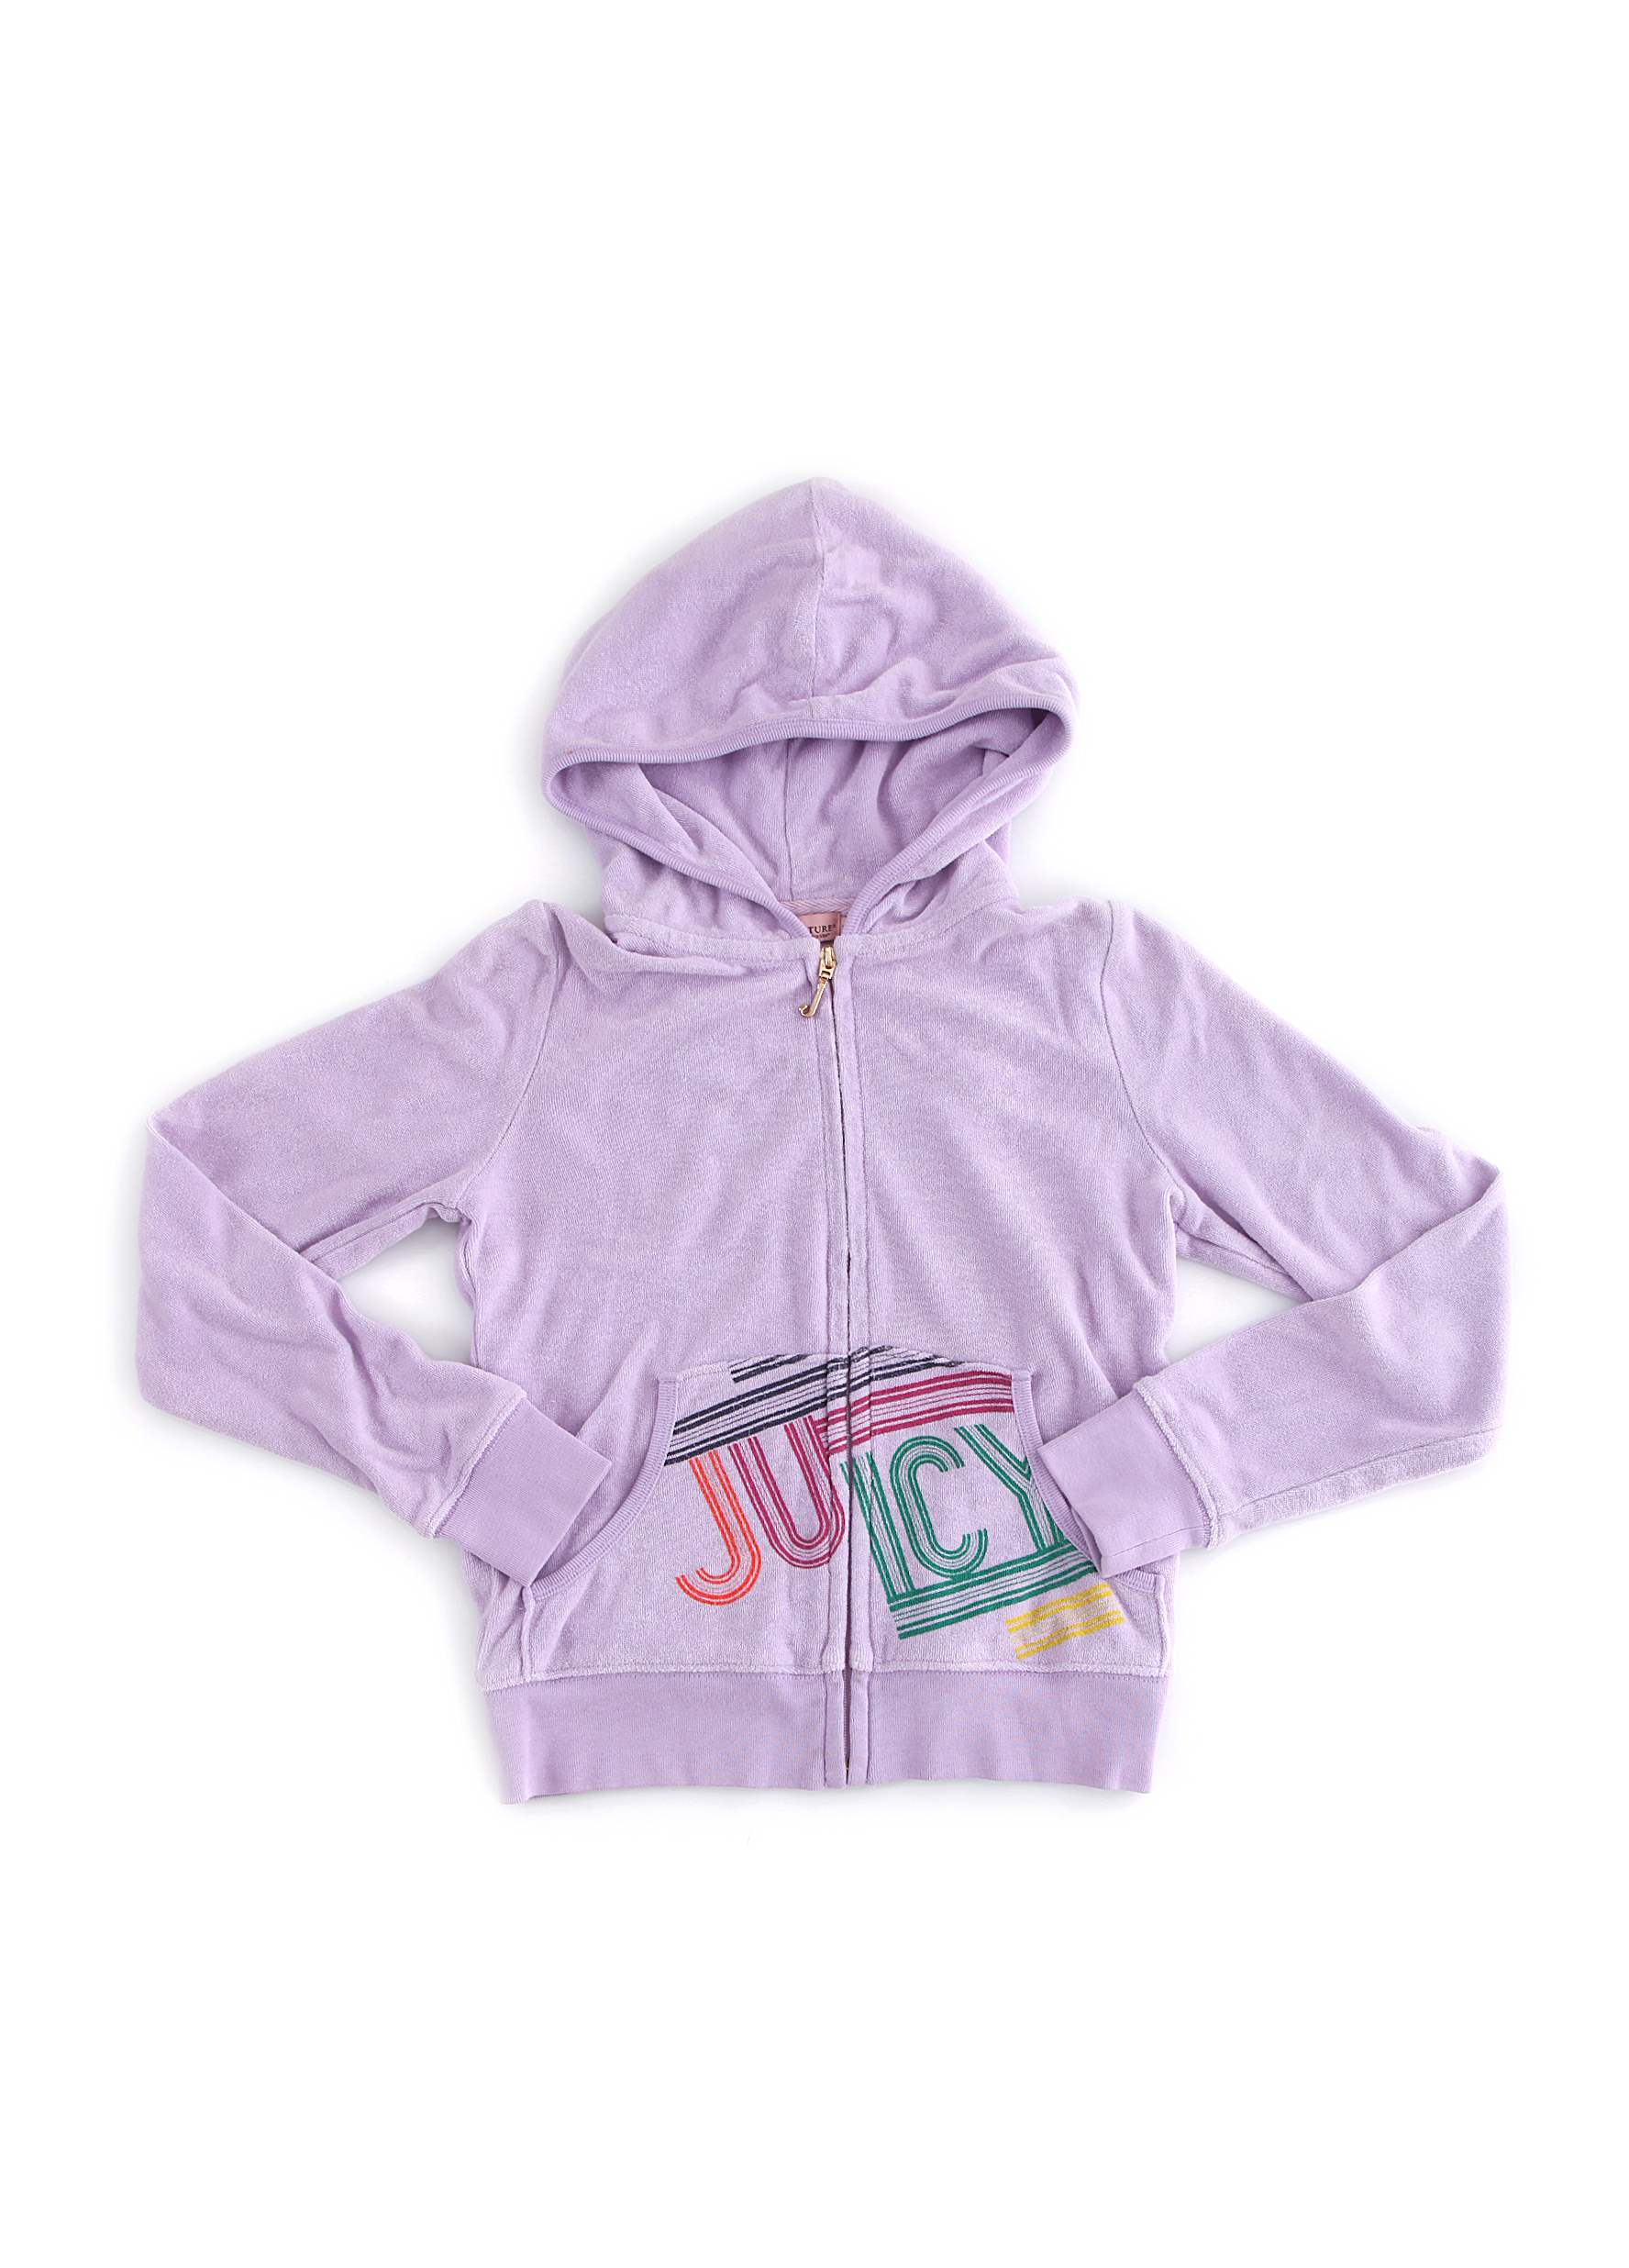 Juicy Couture Kids - Παιδική Ζακέτα JUICY COUTURE